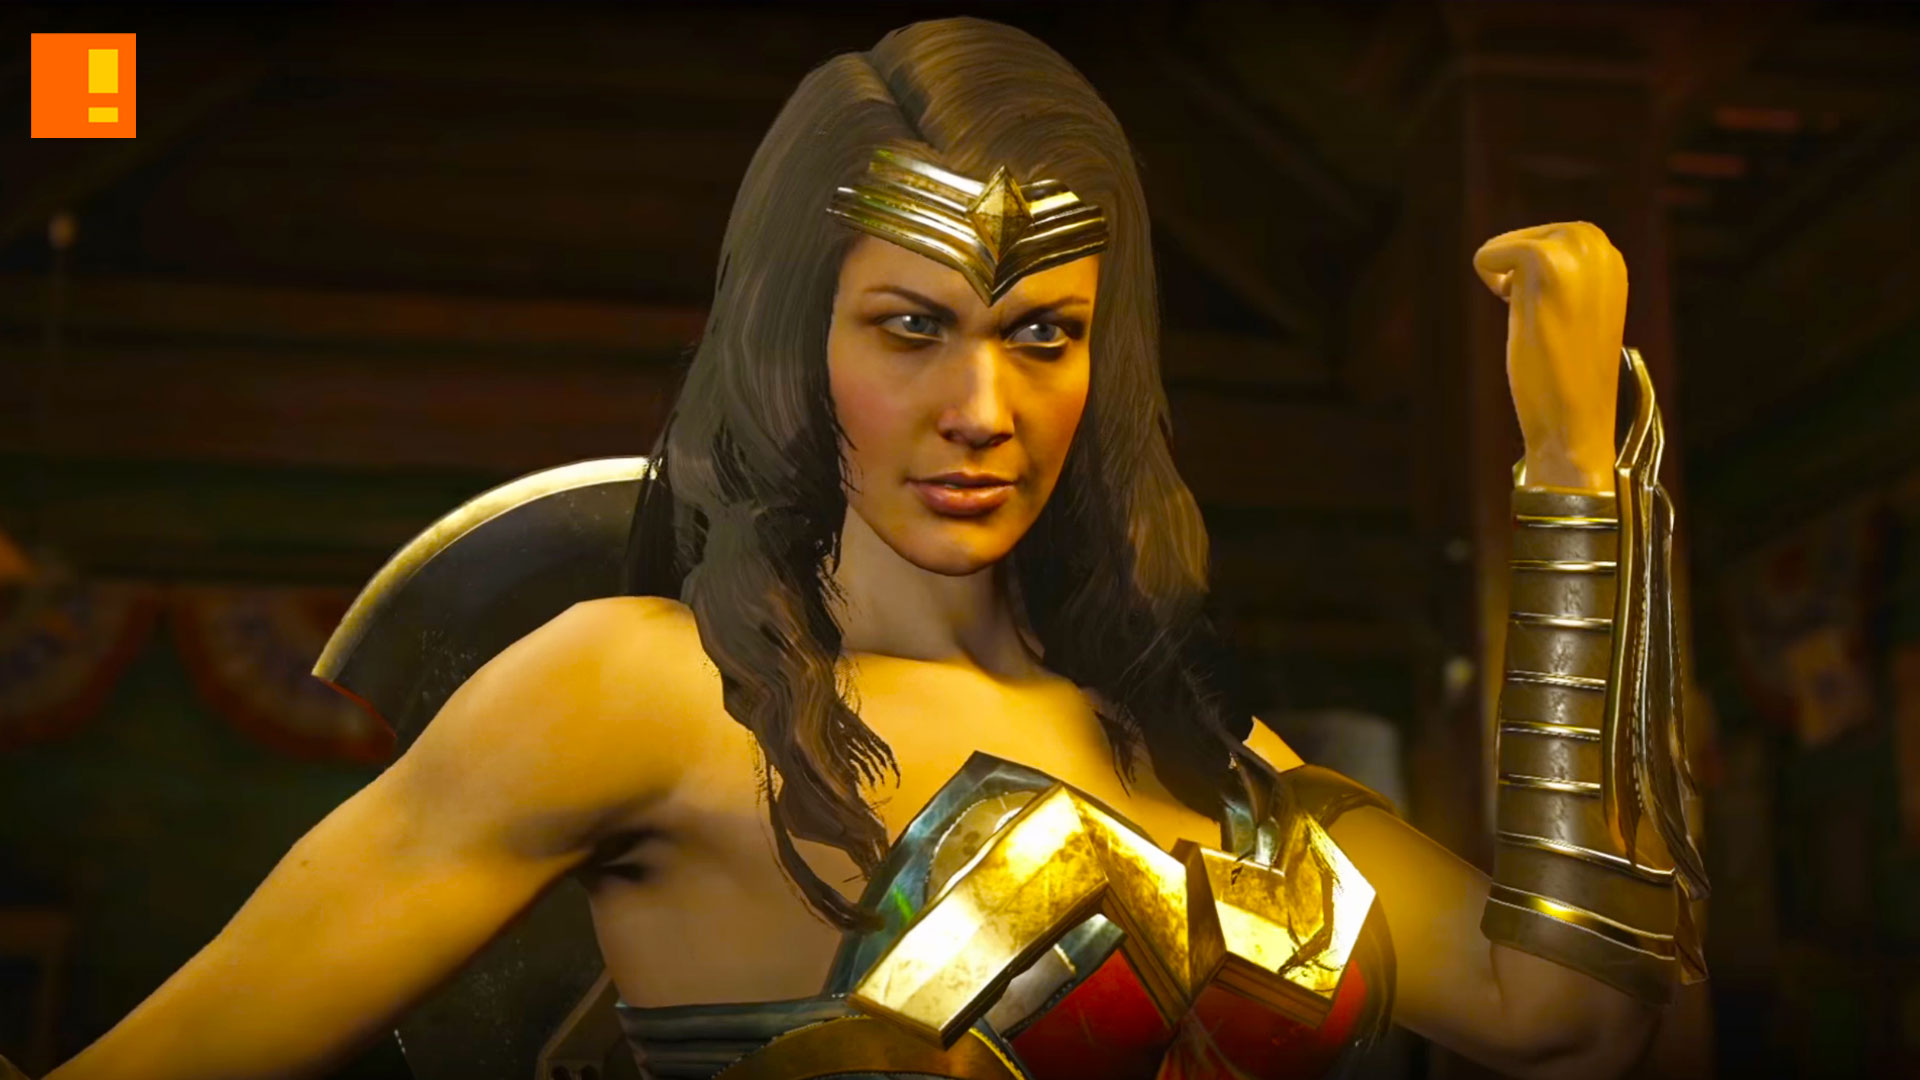 injustice 2, superman, wb games, dc comics, netherrealm studios , flash, supergirl, aquaman, kara zor el, batman, bruce wayne, clark kent, kal-el,battle, beat 'em up, the action pixel, entertainment on tap, wonder woman, sdcc, trailer, blue beetle,